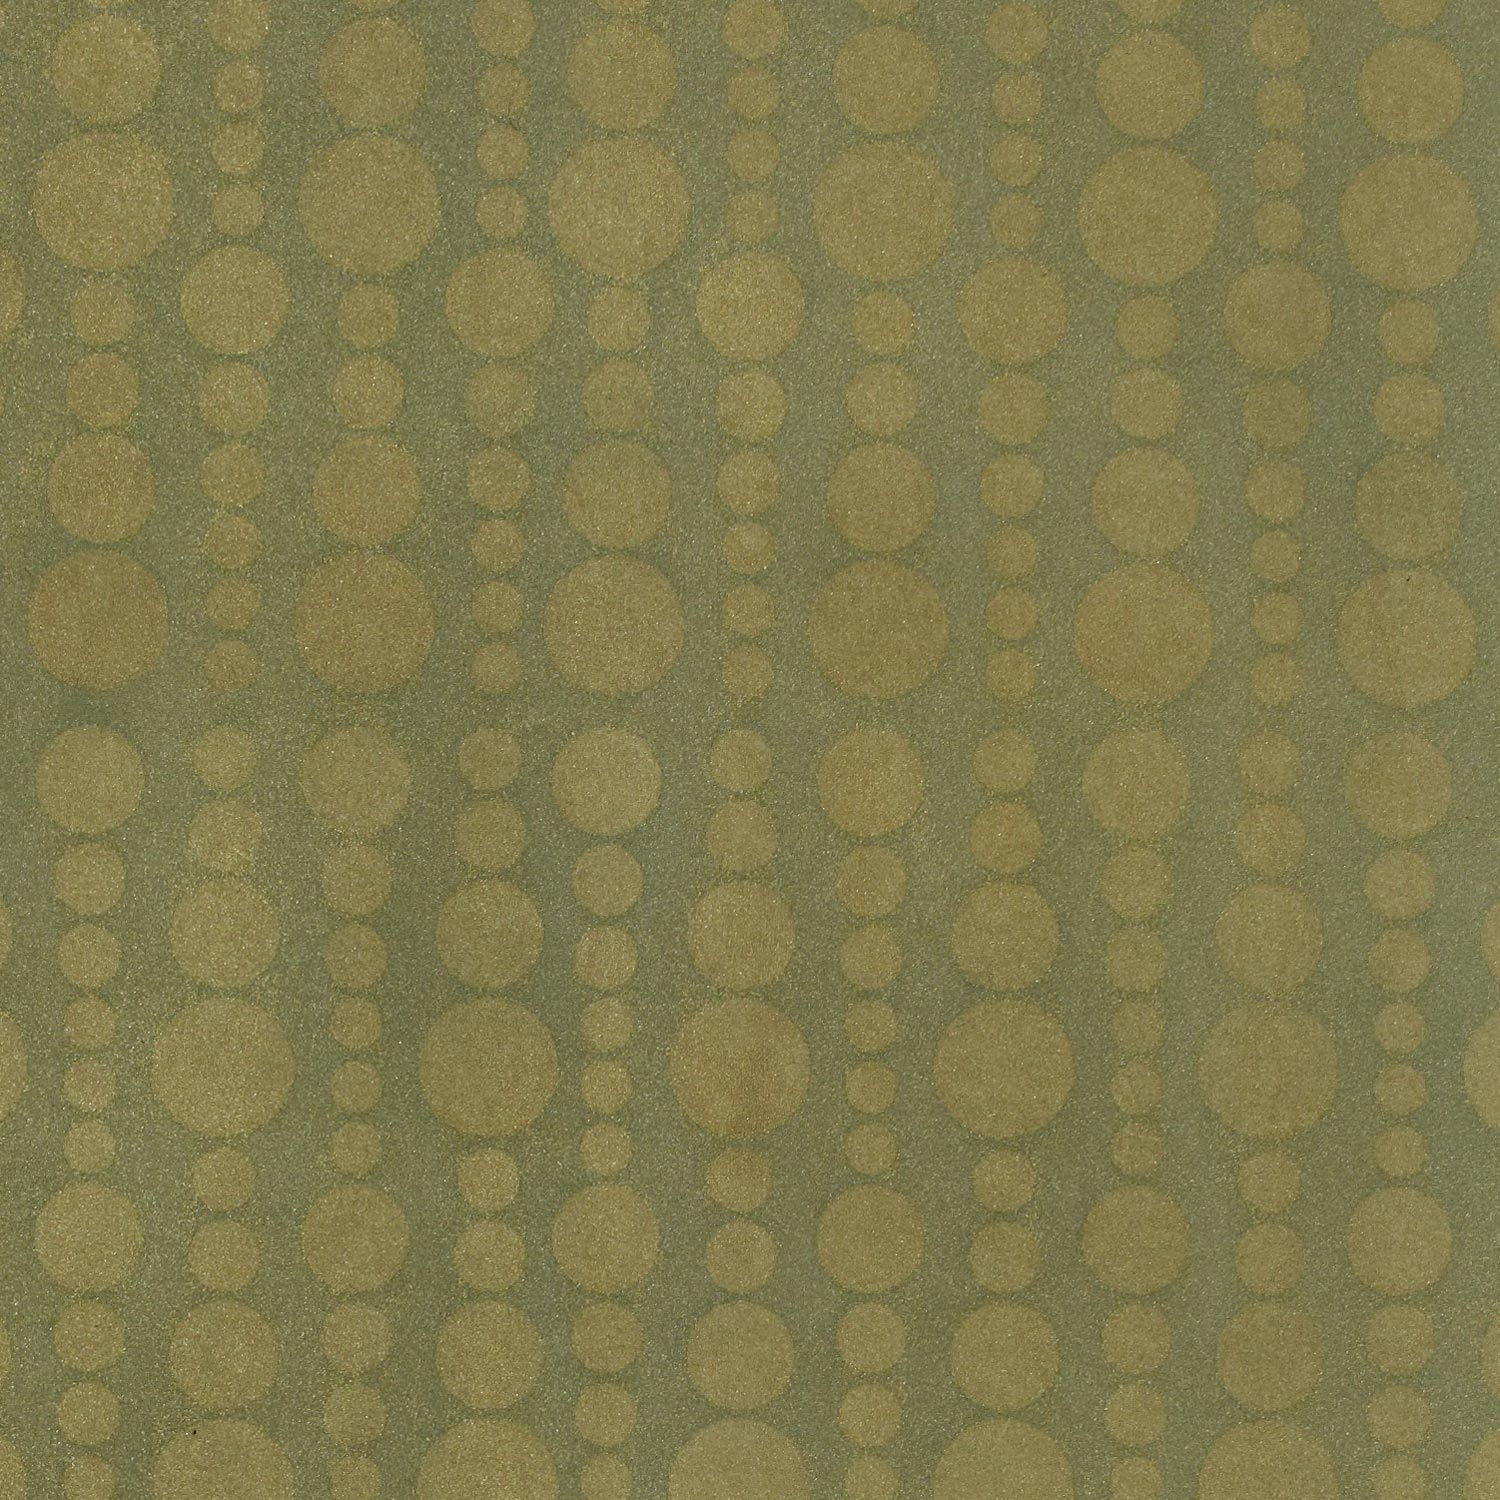 Tiny Bubbles Sea Green Gold